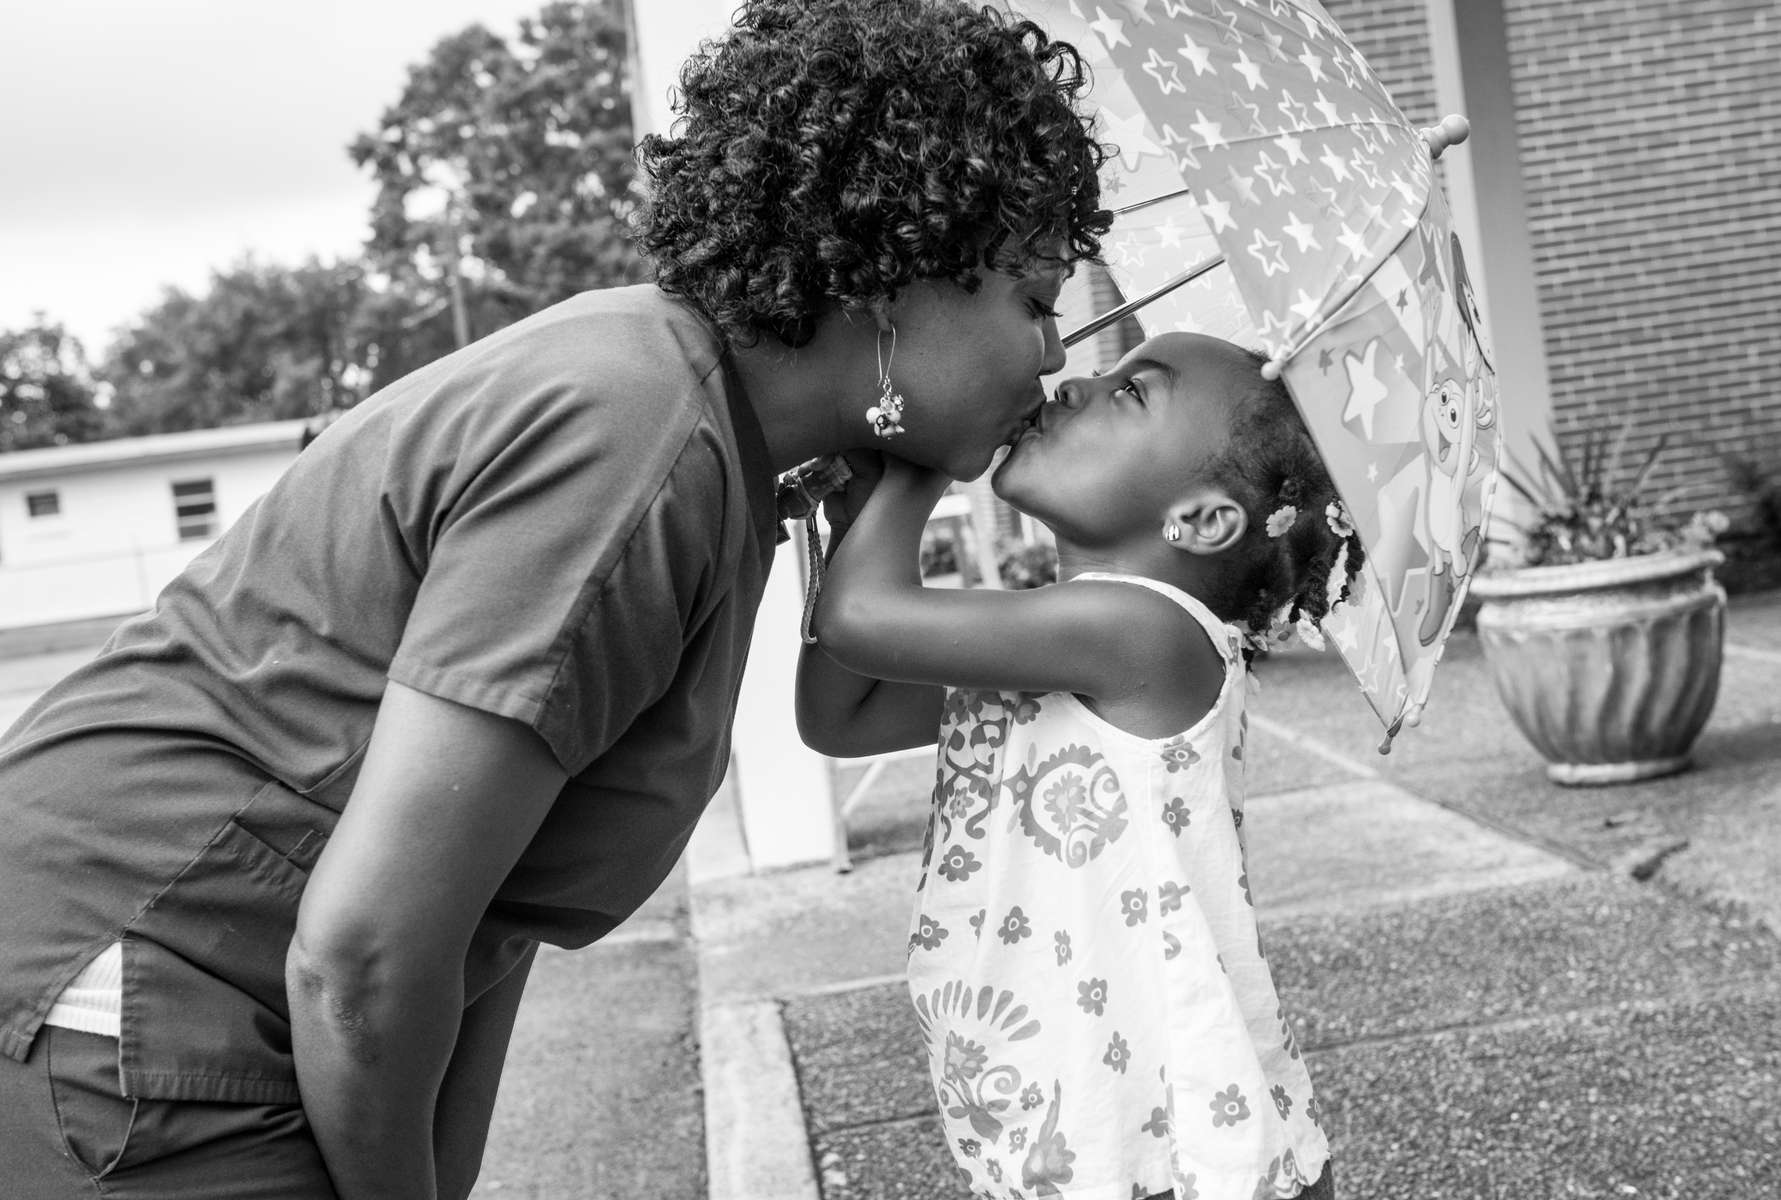 Nikki Brown and her daughter Kristian, 4-years-old, share a moment under an umbrella outside church in Chattanooga, TN on August 21, 2013.